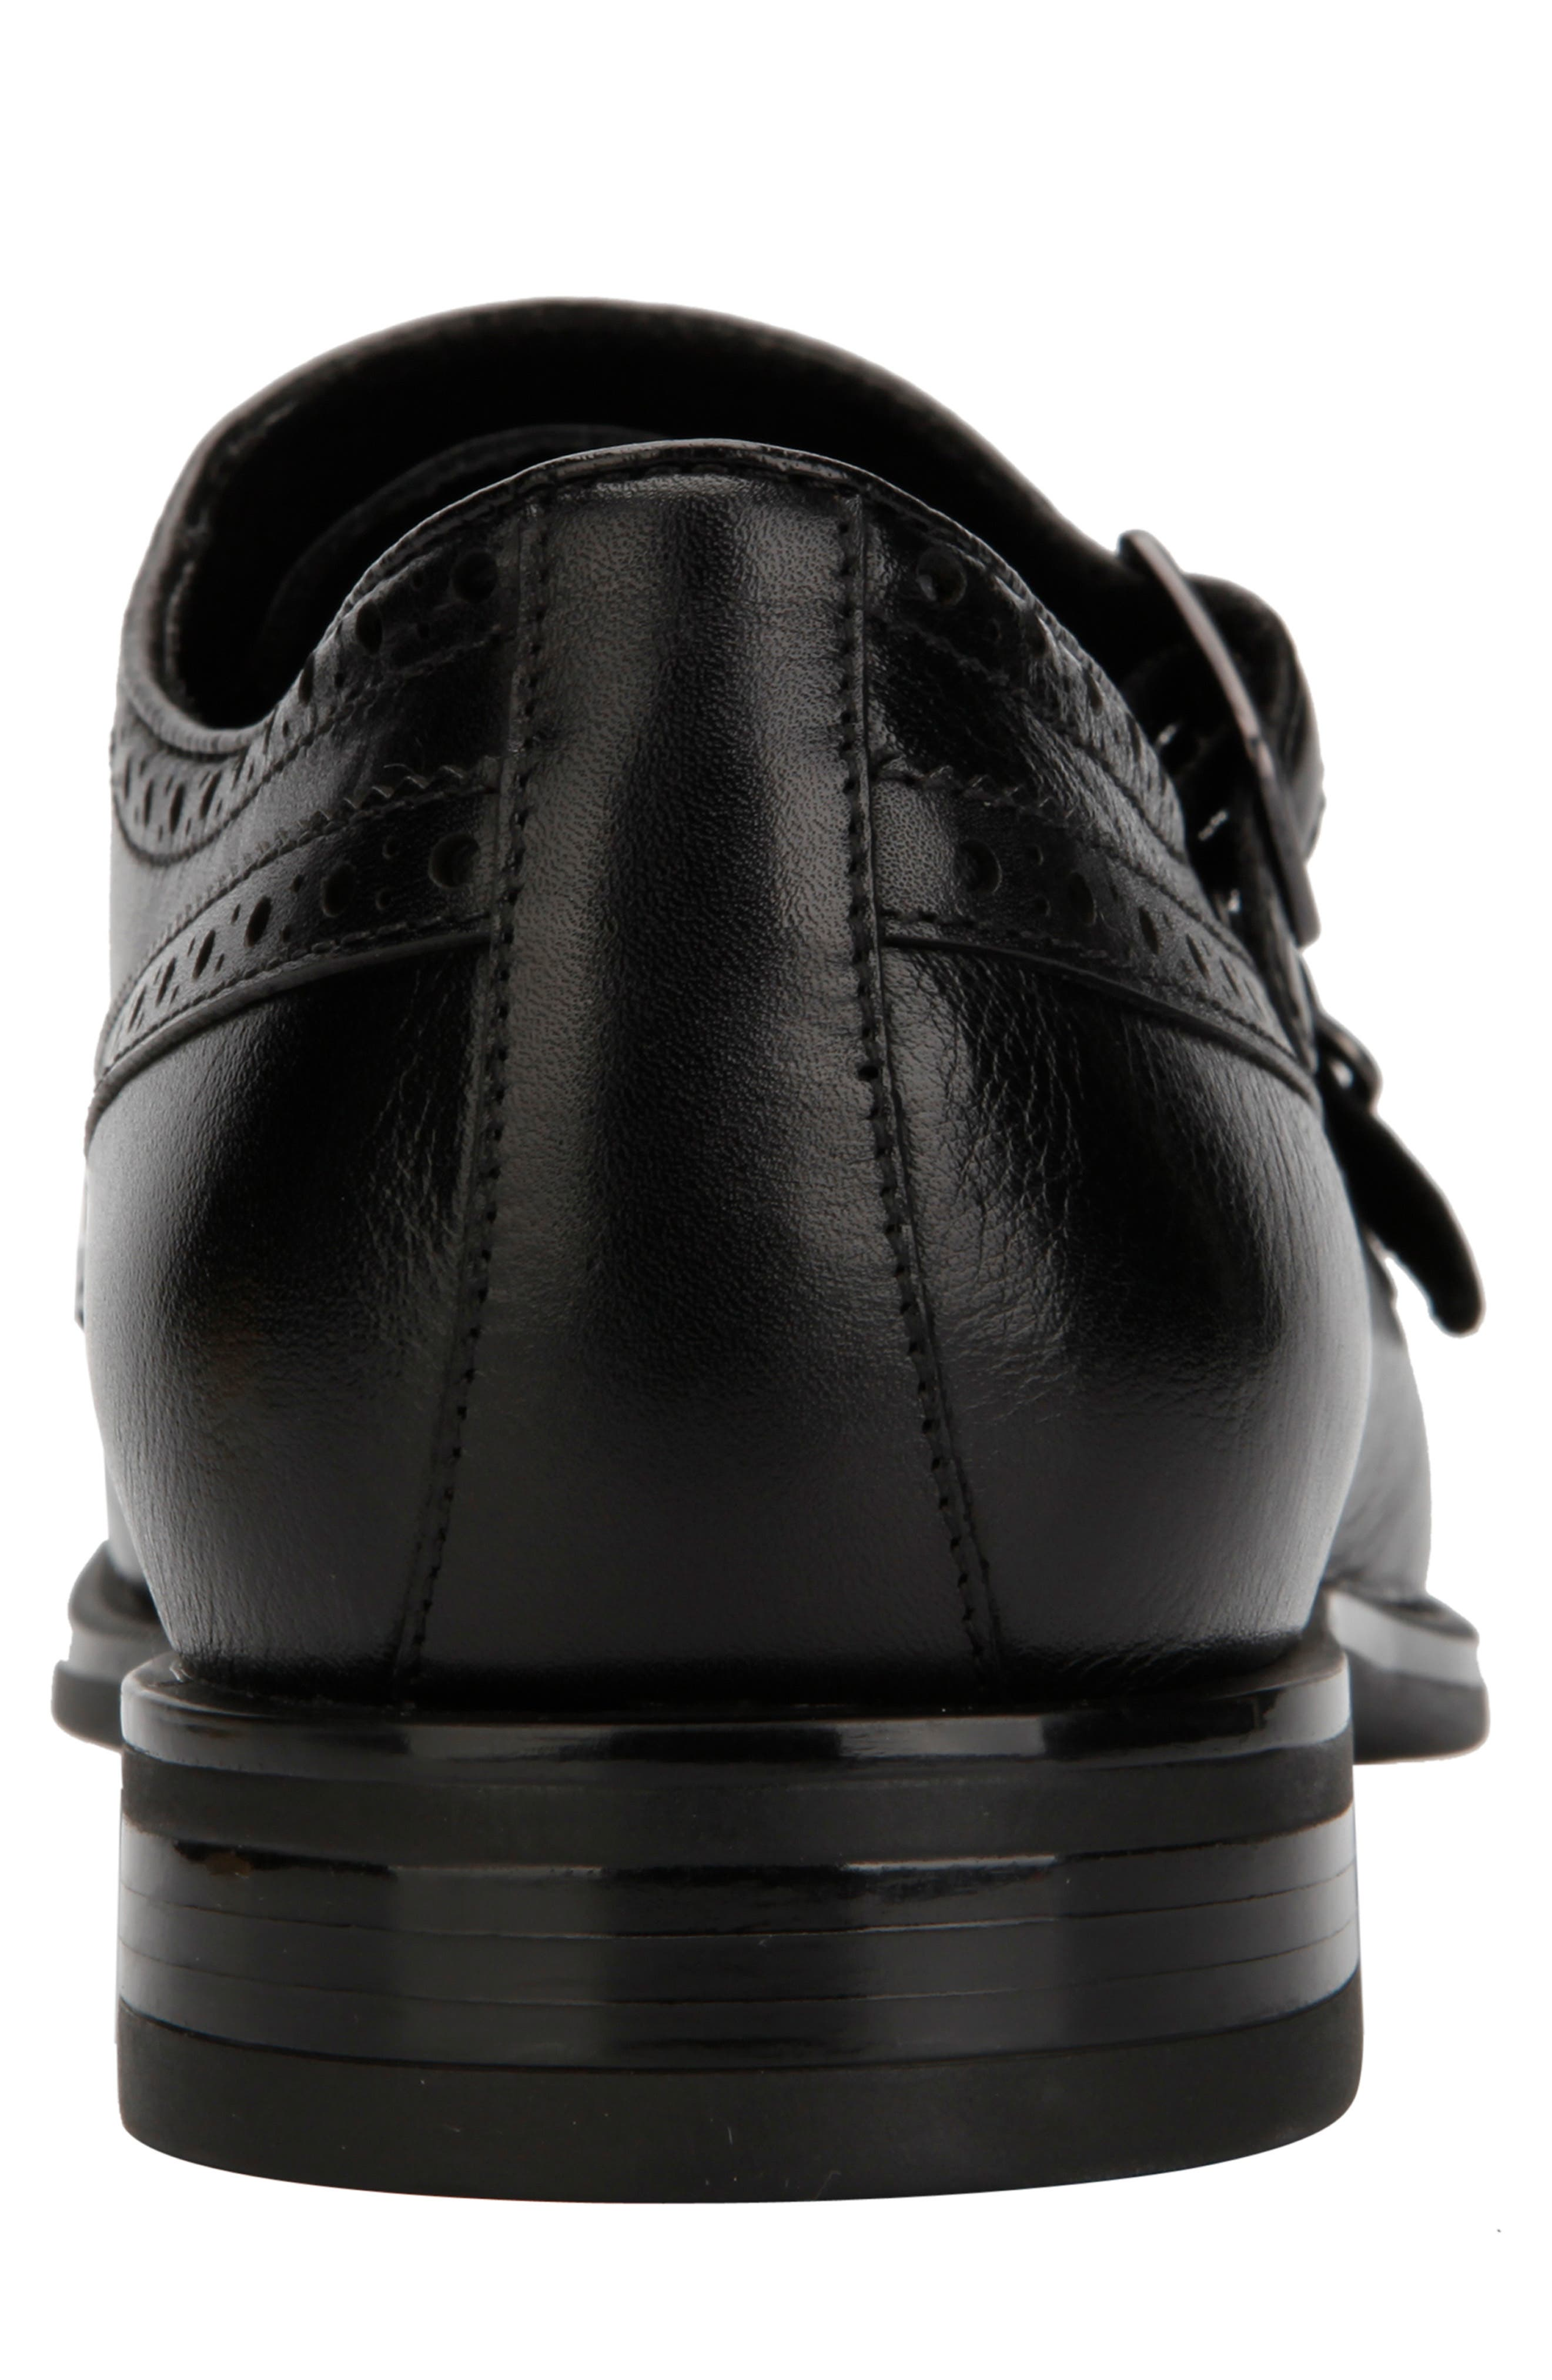 KENNETH COLE NEW YORK, Futurepod Double Monk Strap Shoe, Alternate thumbnail 5, color, BLACK TUMBLED LEATHER